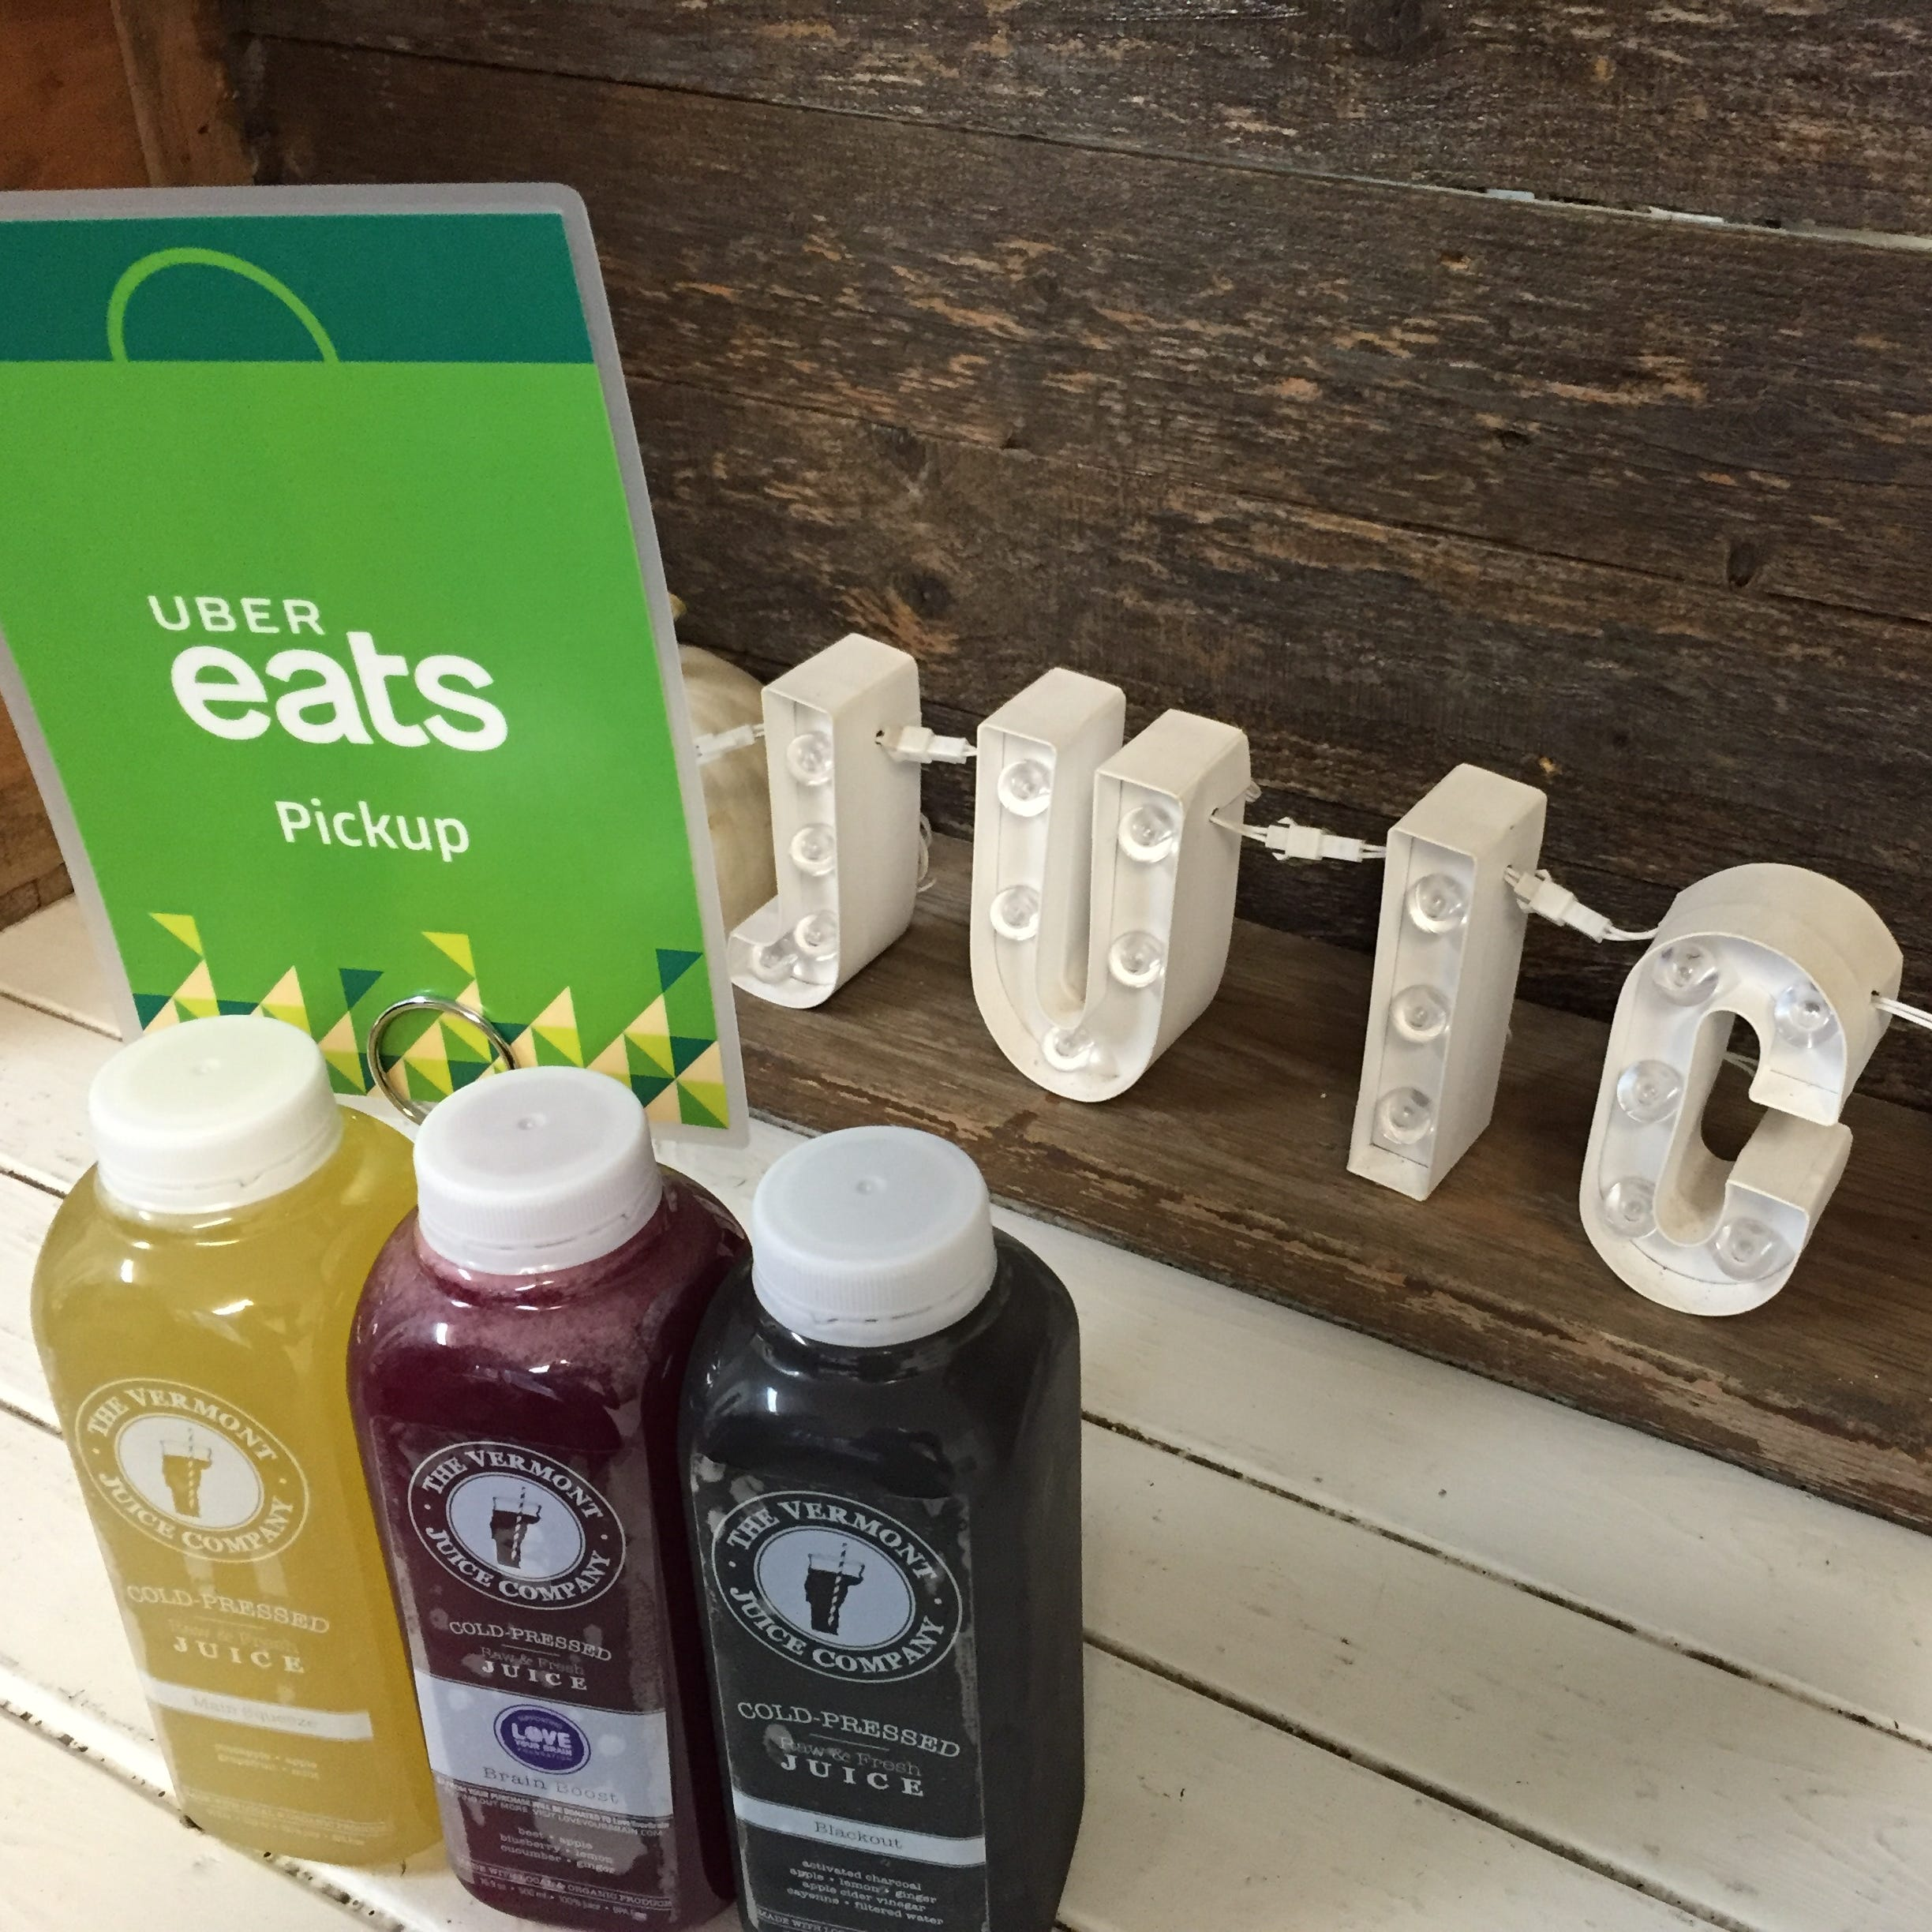 The Vermont Juice Co. is one of a handful of Burlington businesses whose food and drink are now available for delivery via Uber Eats.